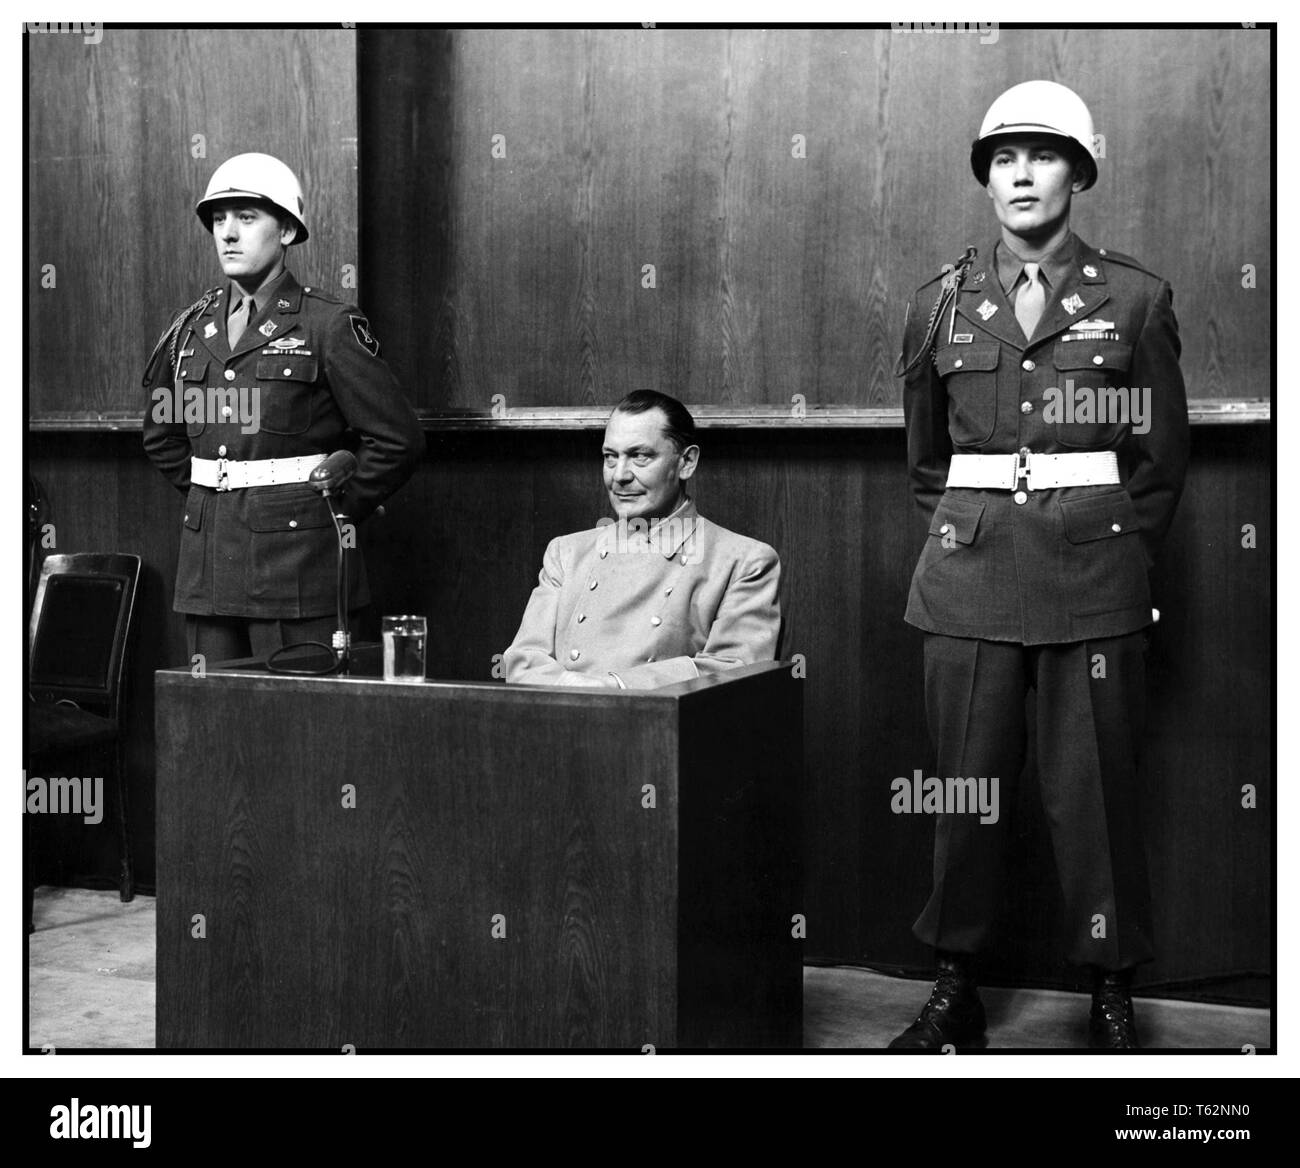 GOERING NUREMBERG TRIALS Enigmatic expression by Nazi Former Luftwaffe leader Hermann Göring at the Nuremberg Trials, 1946 Hermann Goering, WW2, Nuremberg Trials Nuremberg Germany - Stock Image